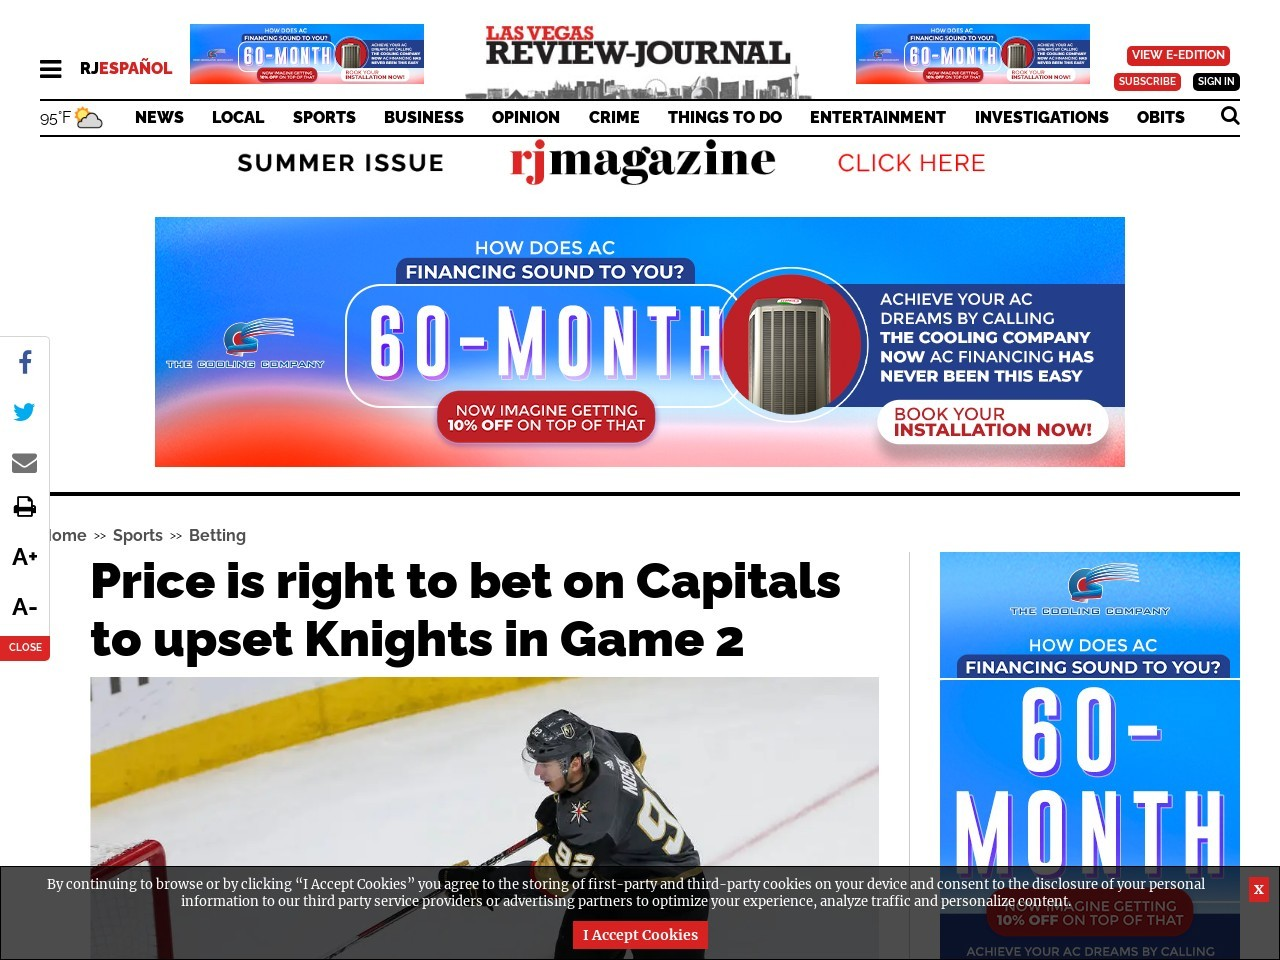 Price is right to bet on Capitals to upset Knights in Game 2